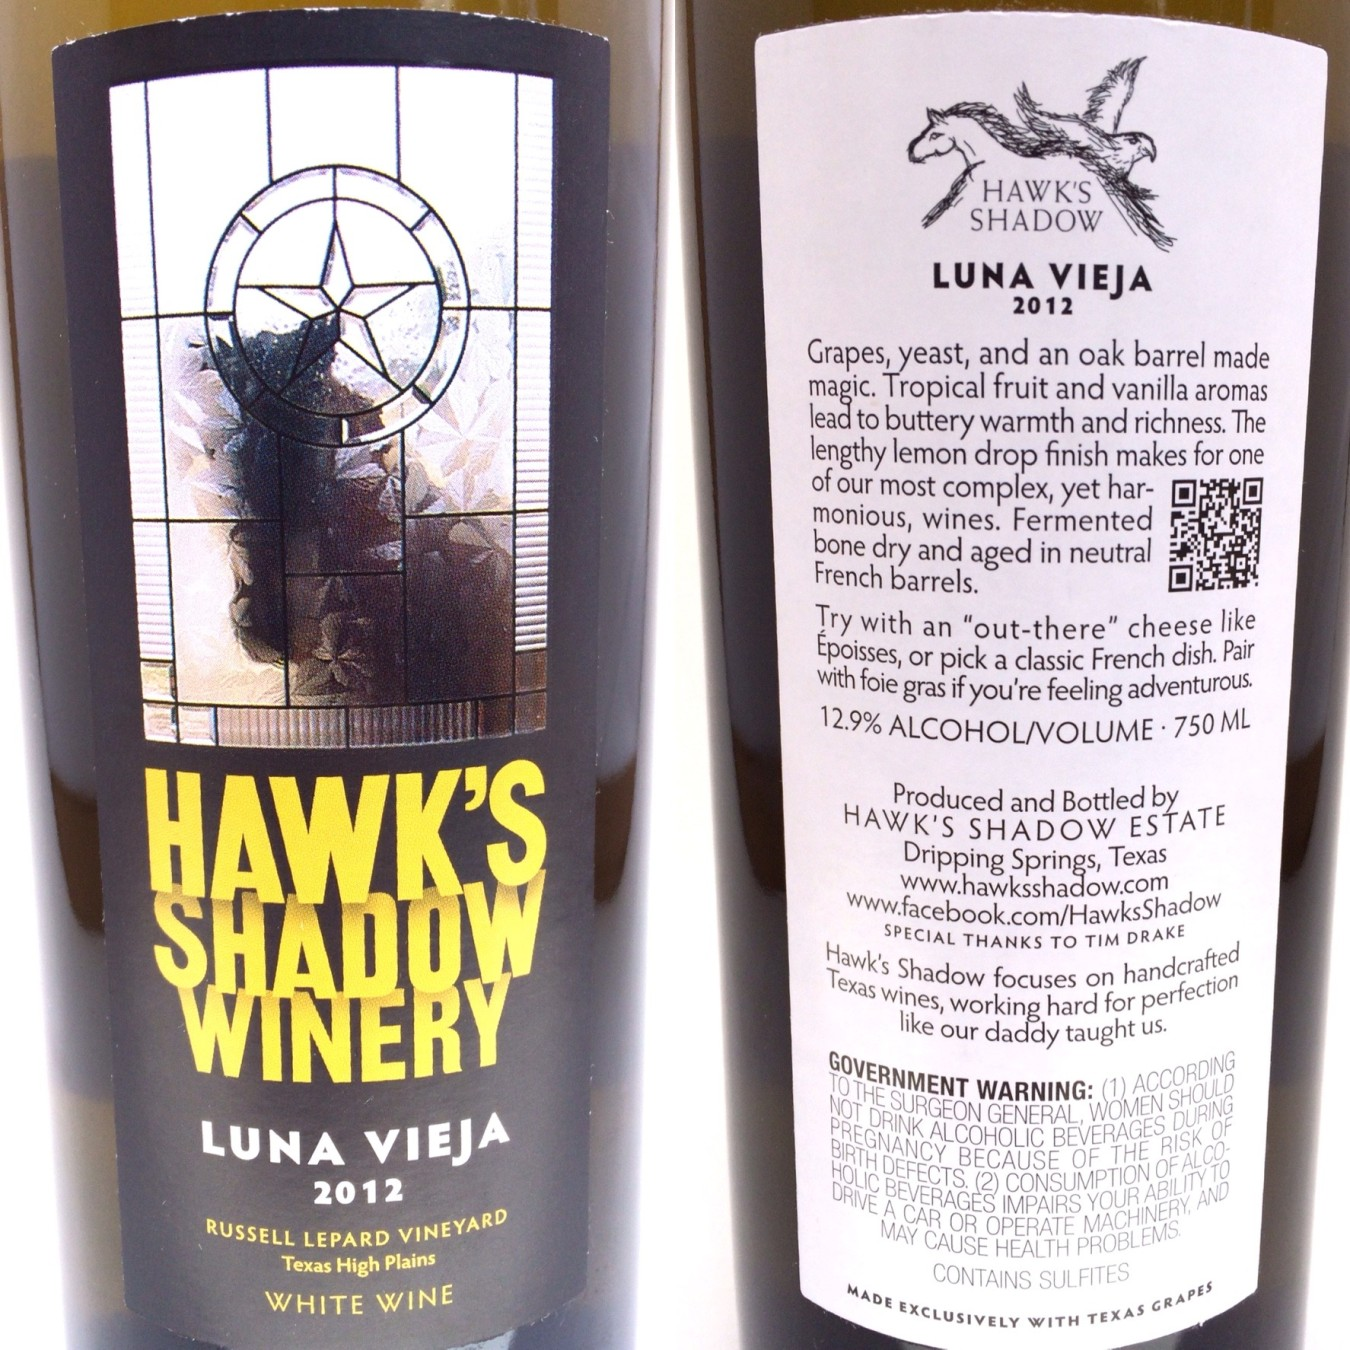 Hawk's Shadow Winery Luna Vieja labels